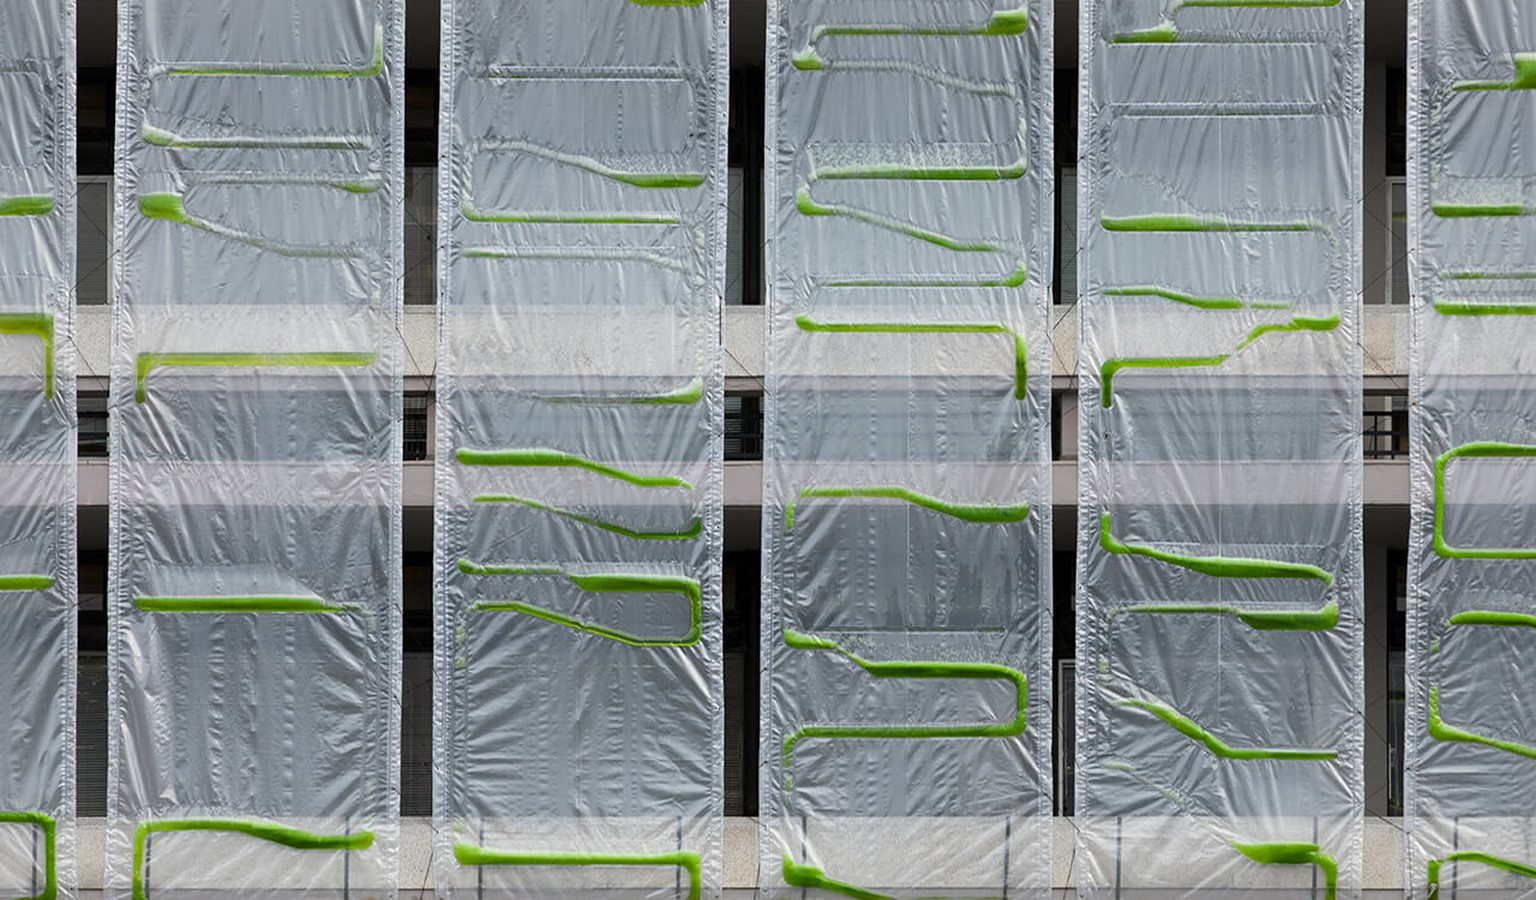 How can architects use Biomimicry while designing sustainable designs- Sheet12